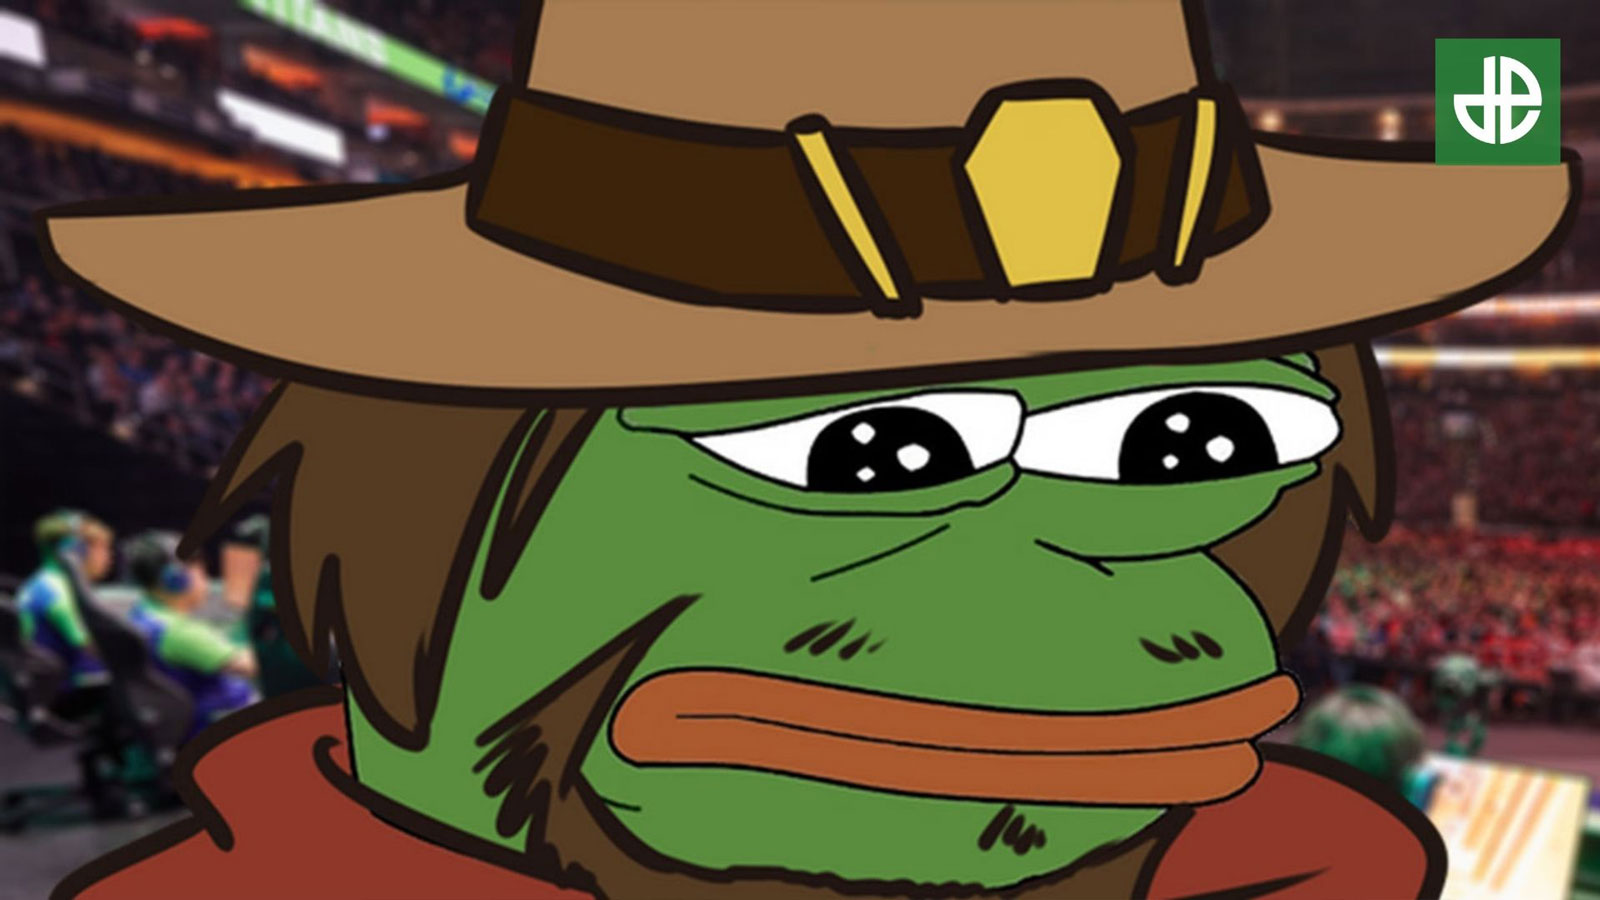 McCree pepe Overwatch header